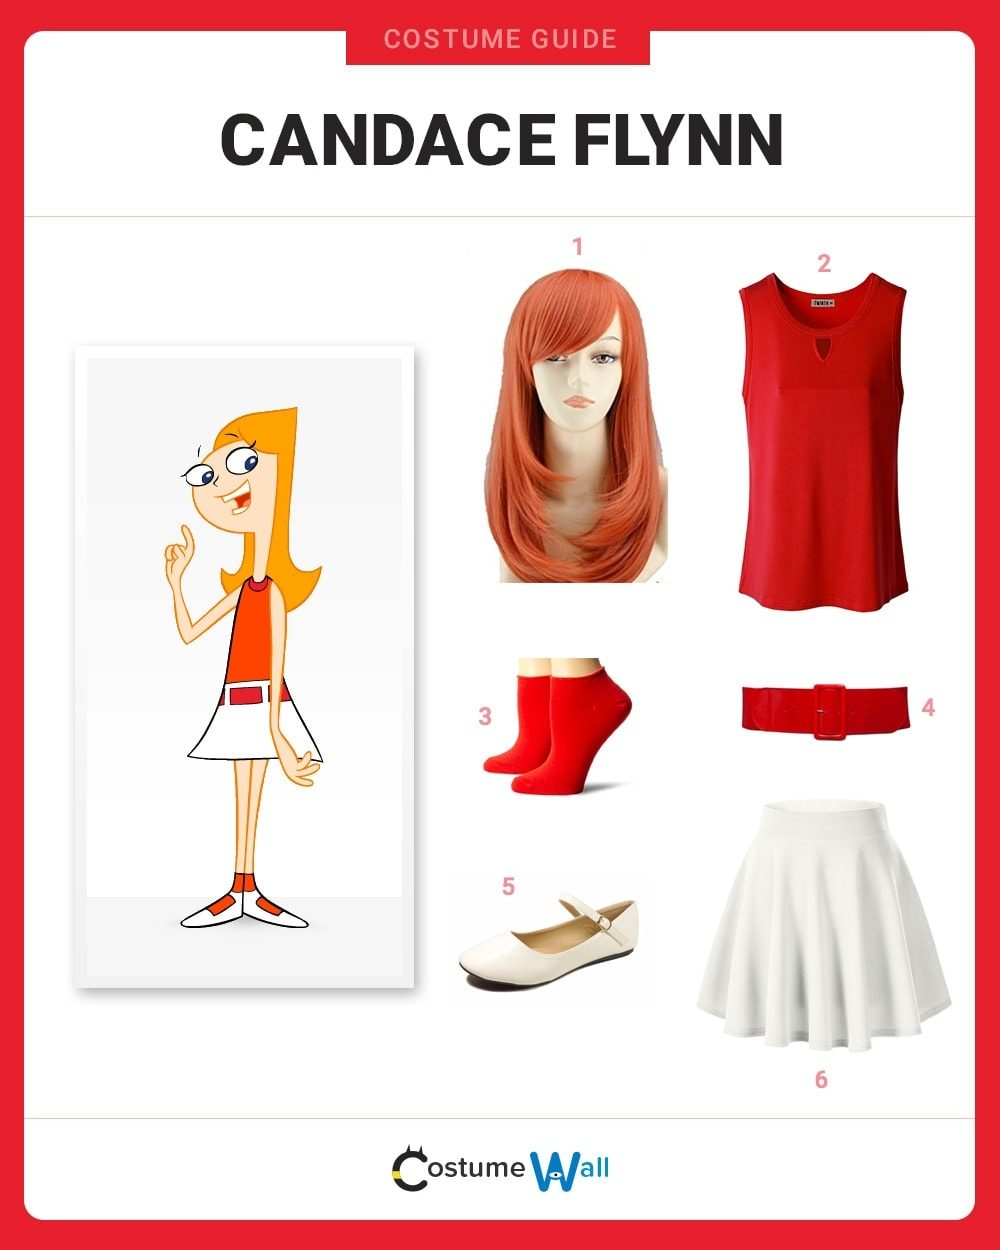 Candace Flynn Costume Guide